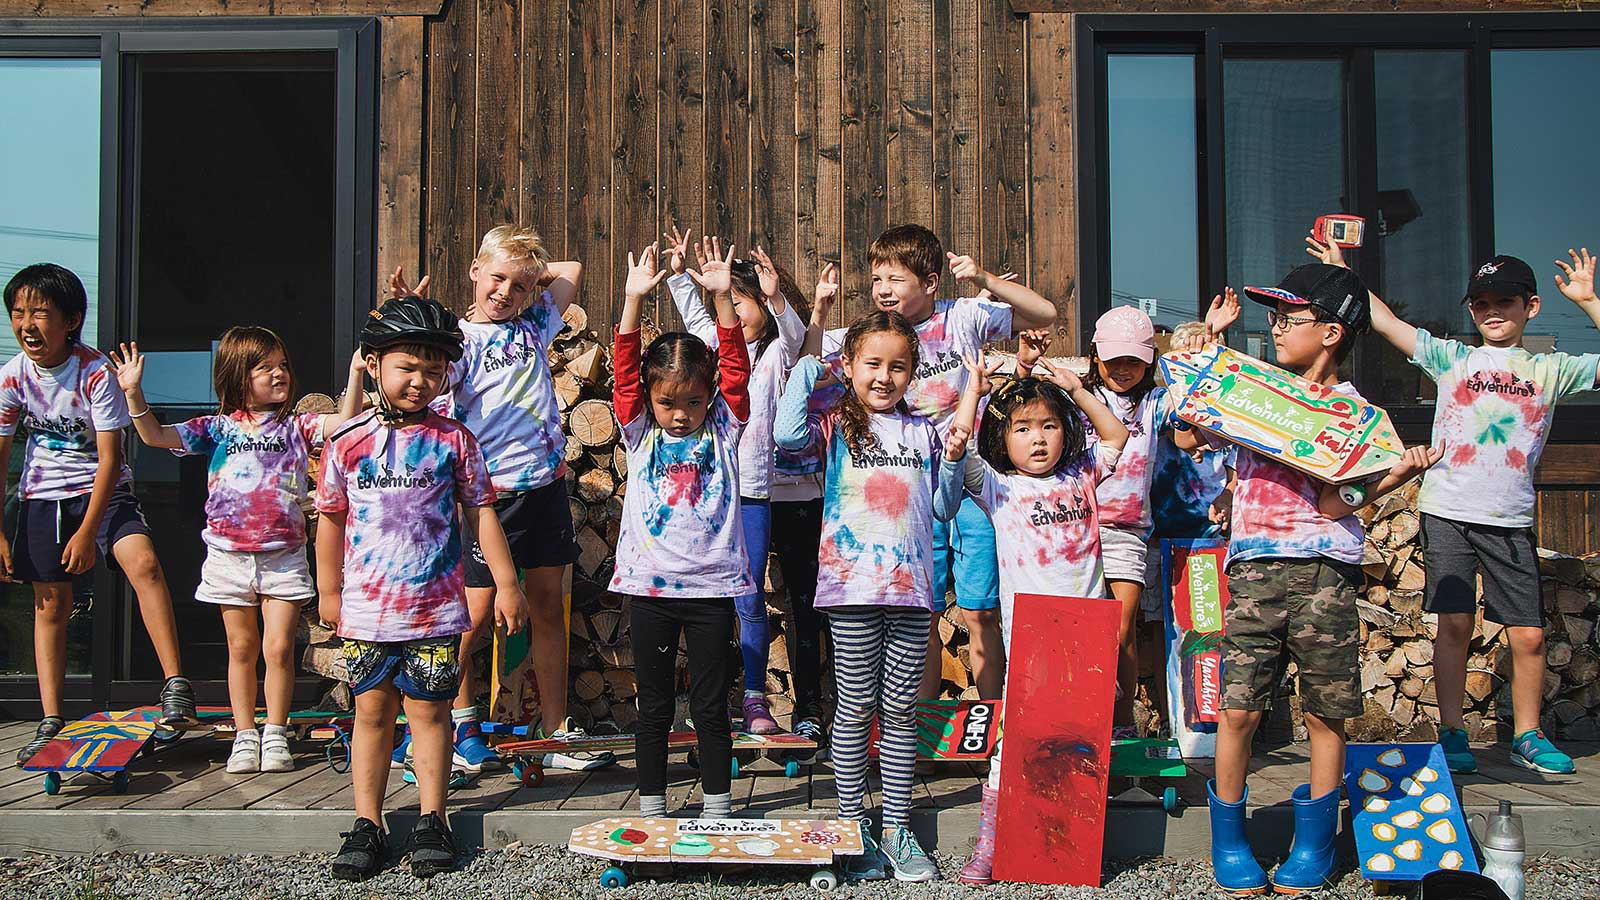 Group shot of children at summer camp with tie dye shirts